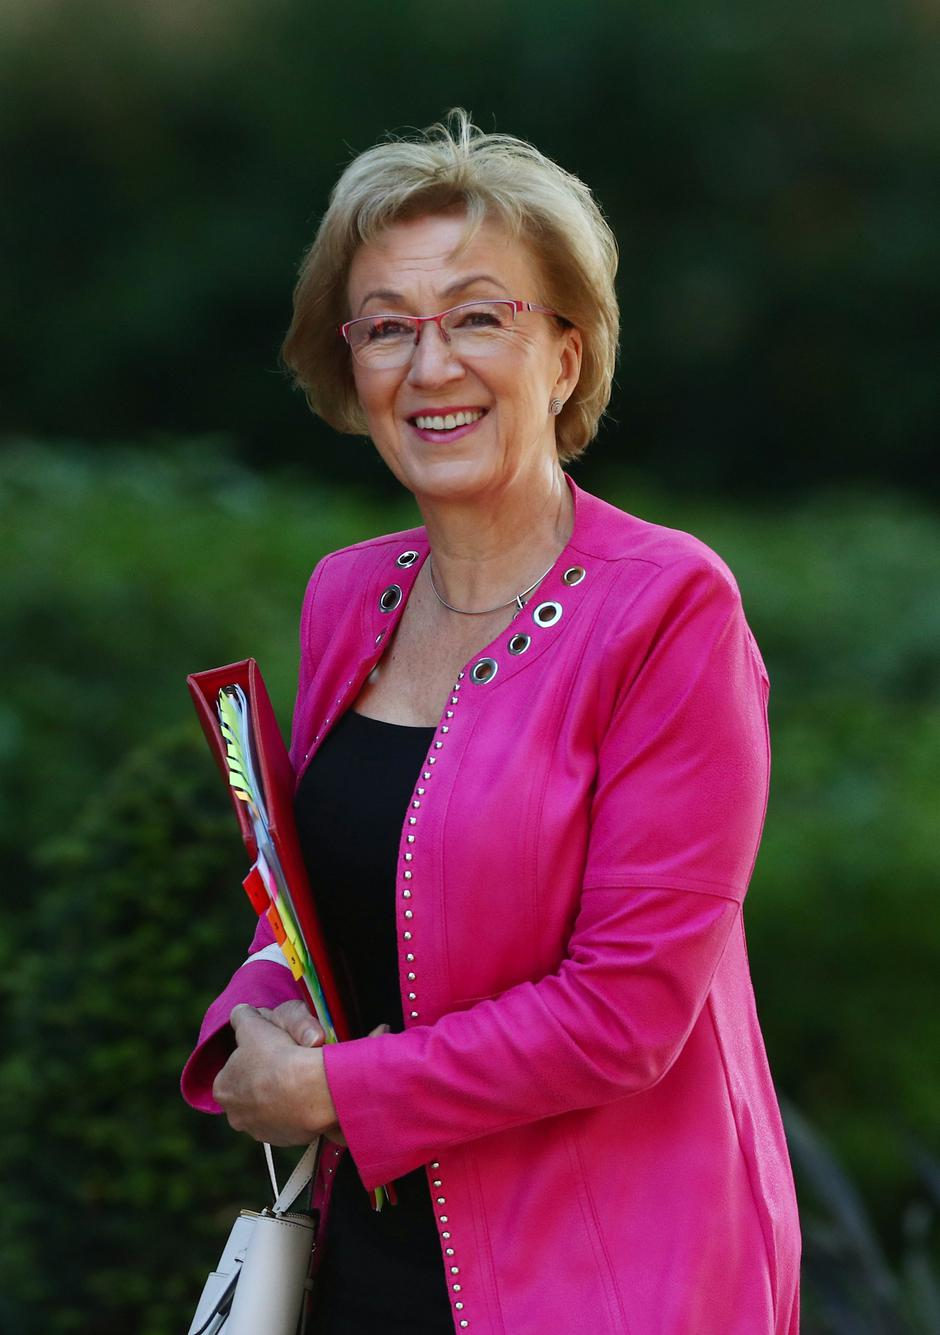 Andrea Leadsom | Author: HANNAH MCKAY/REUTERS/PIXSELL